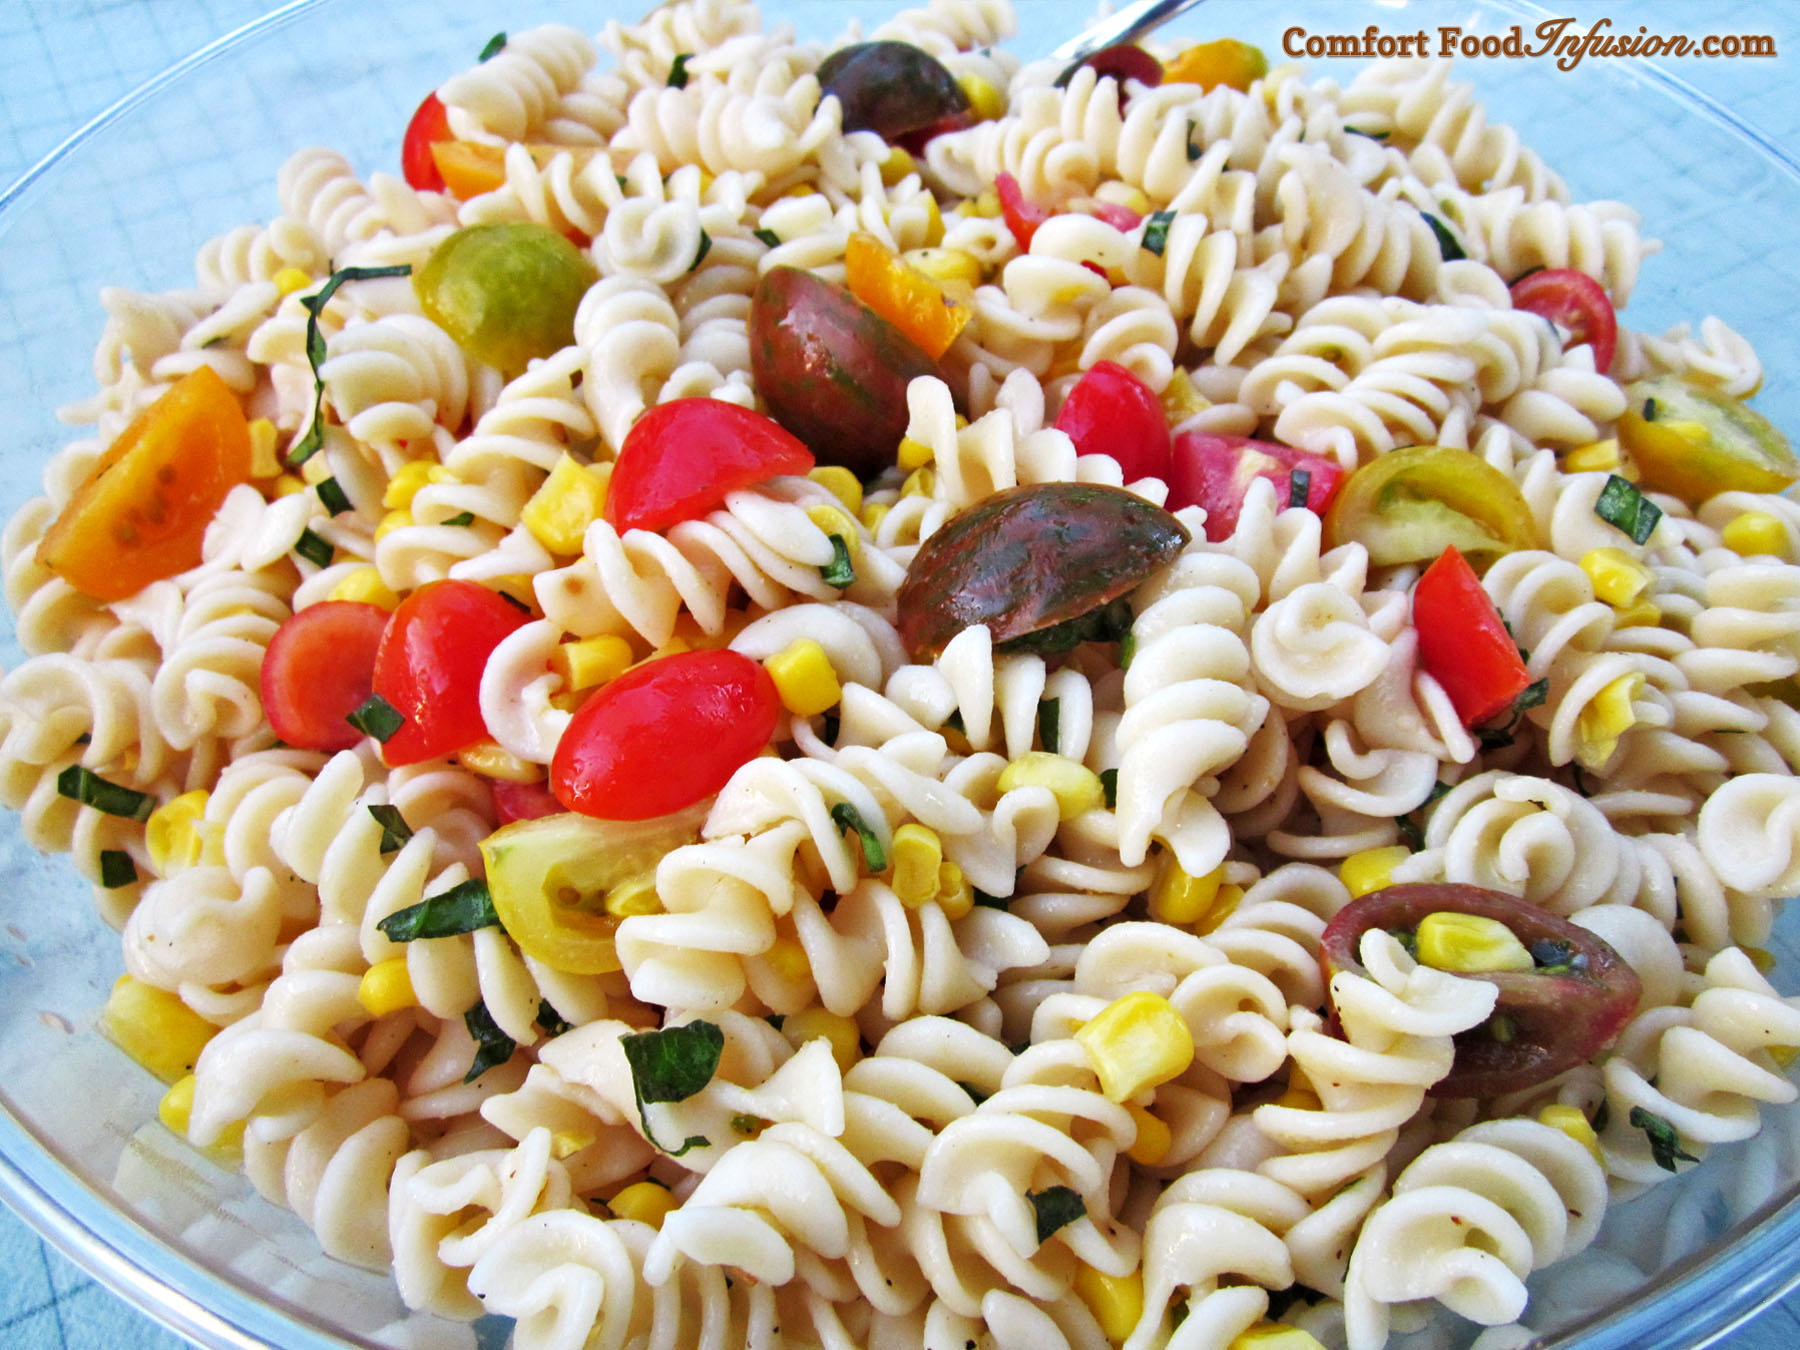 Tomato and Corn Pasta Salad